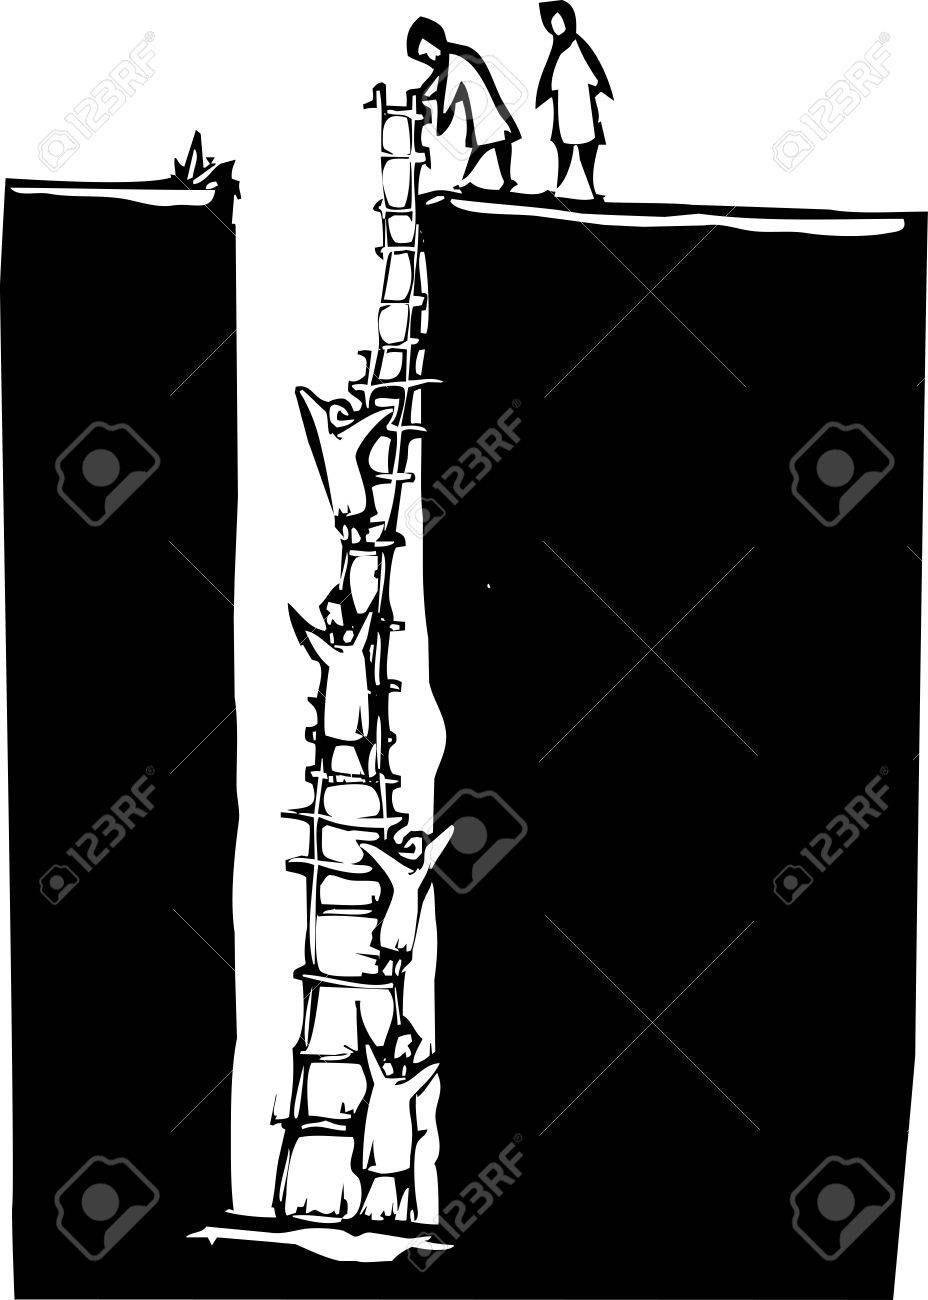 Vector Woodcut Style Image Of People Climbing Out Of A Deep Hole Using A Ladder